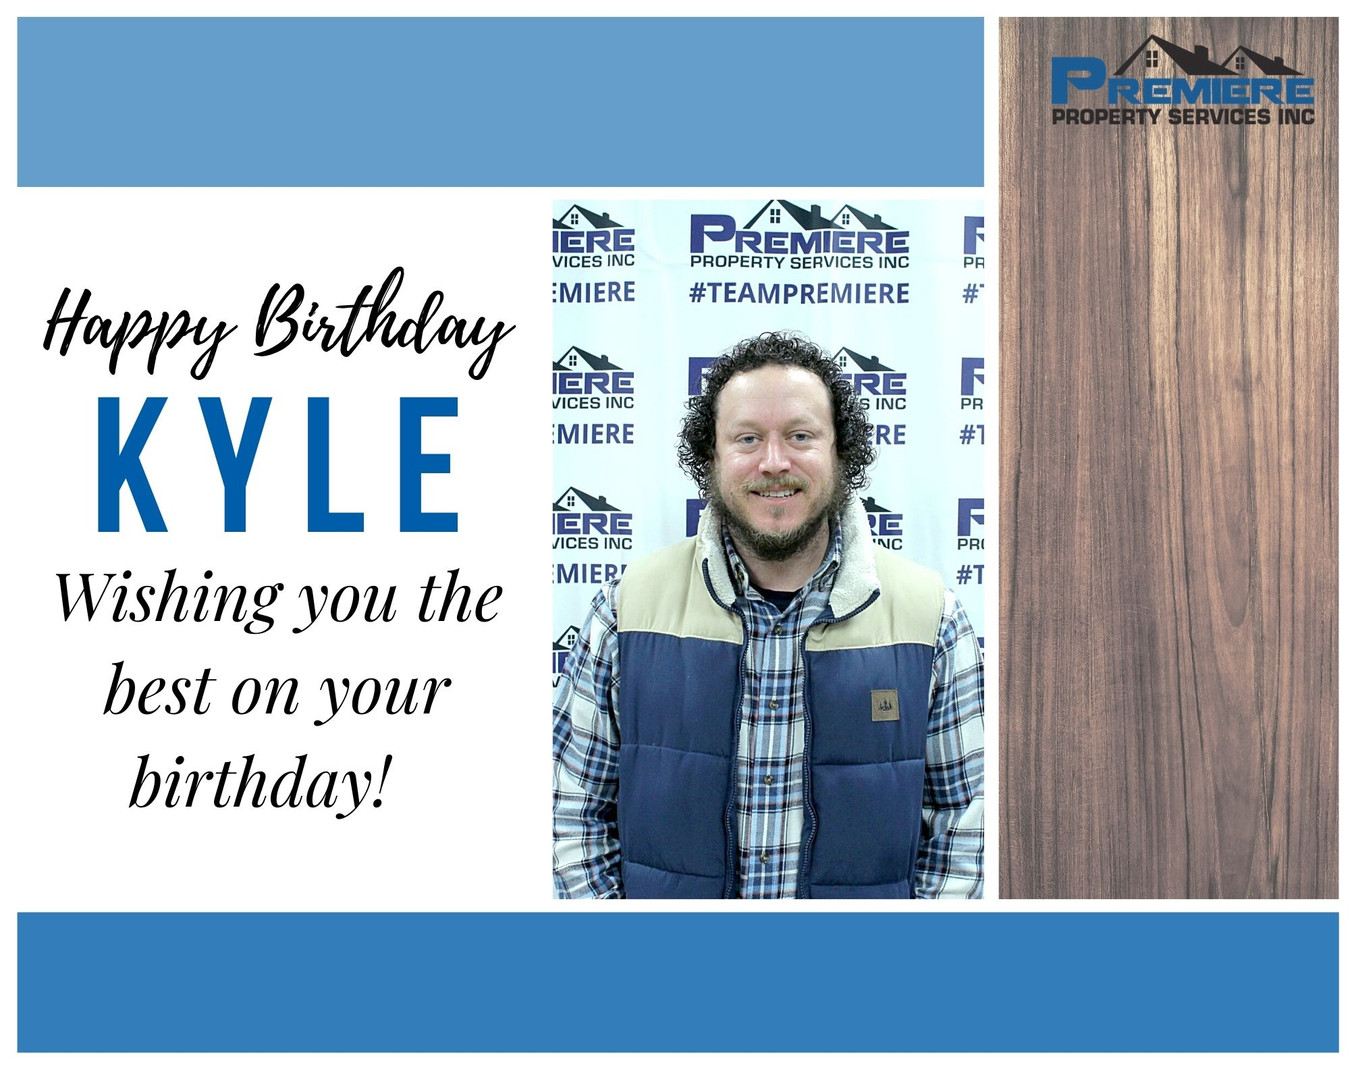 HappyBirthdayKyleB.jpg